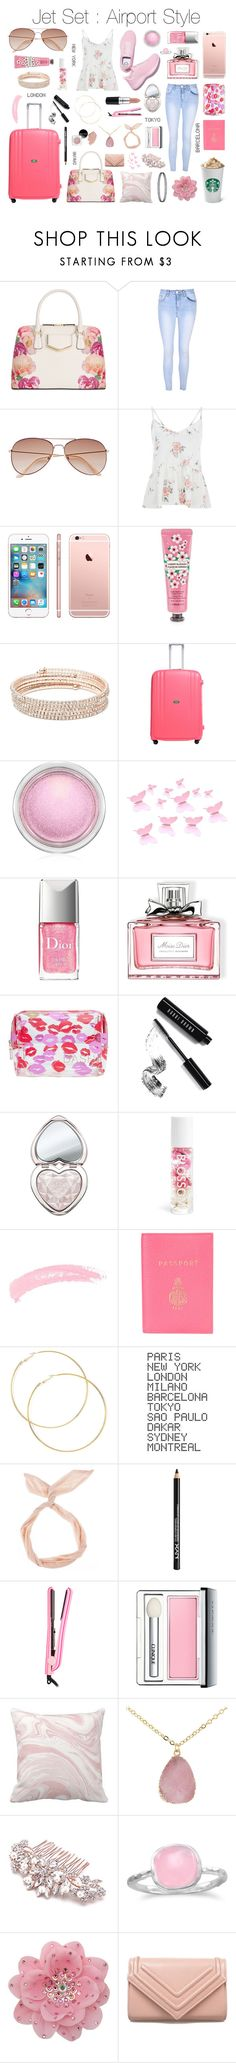 """""""Jet Set : Airport Style"""" by xorozetaxo ❤ liked on Polyvore featuring Calvin Klein, Glamorous, H&M, The Face Shop, Anne Klein, Lojel, MAC Cosmetics, Christian Dior, Bobbi Brown Cosmetics and Too Faced Cosmetics"""